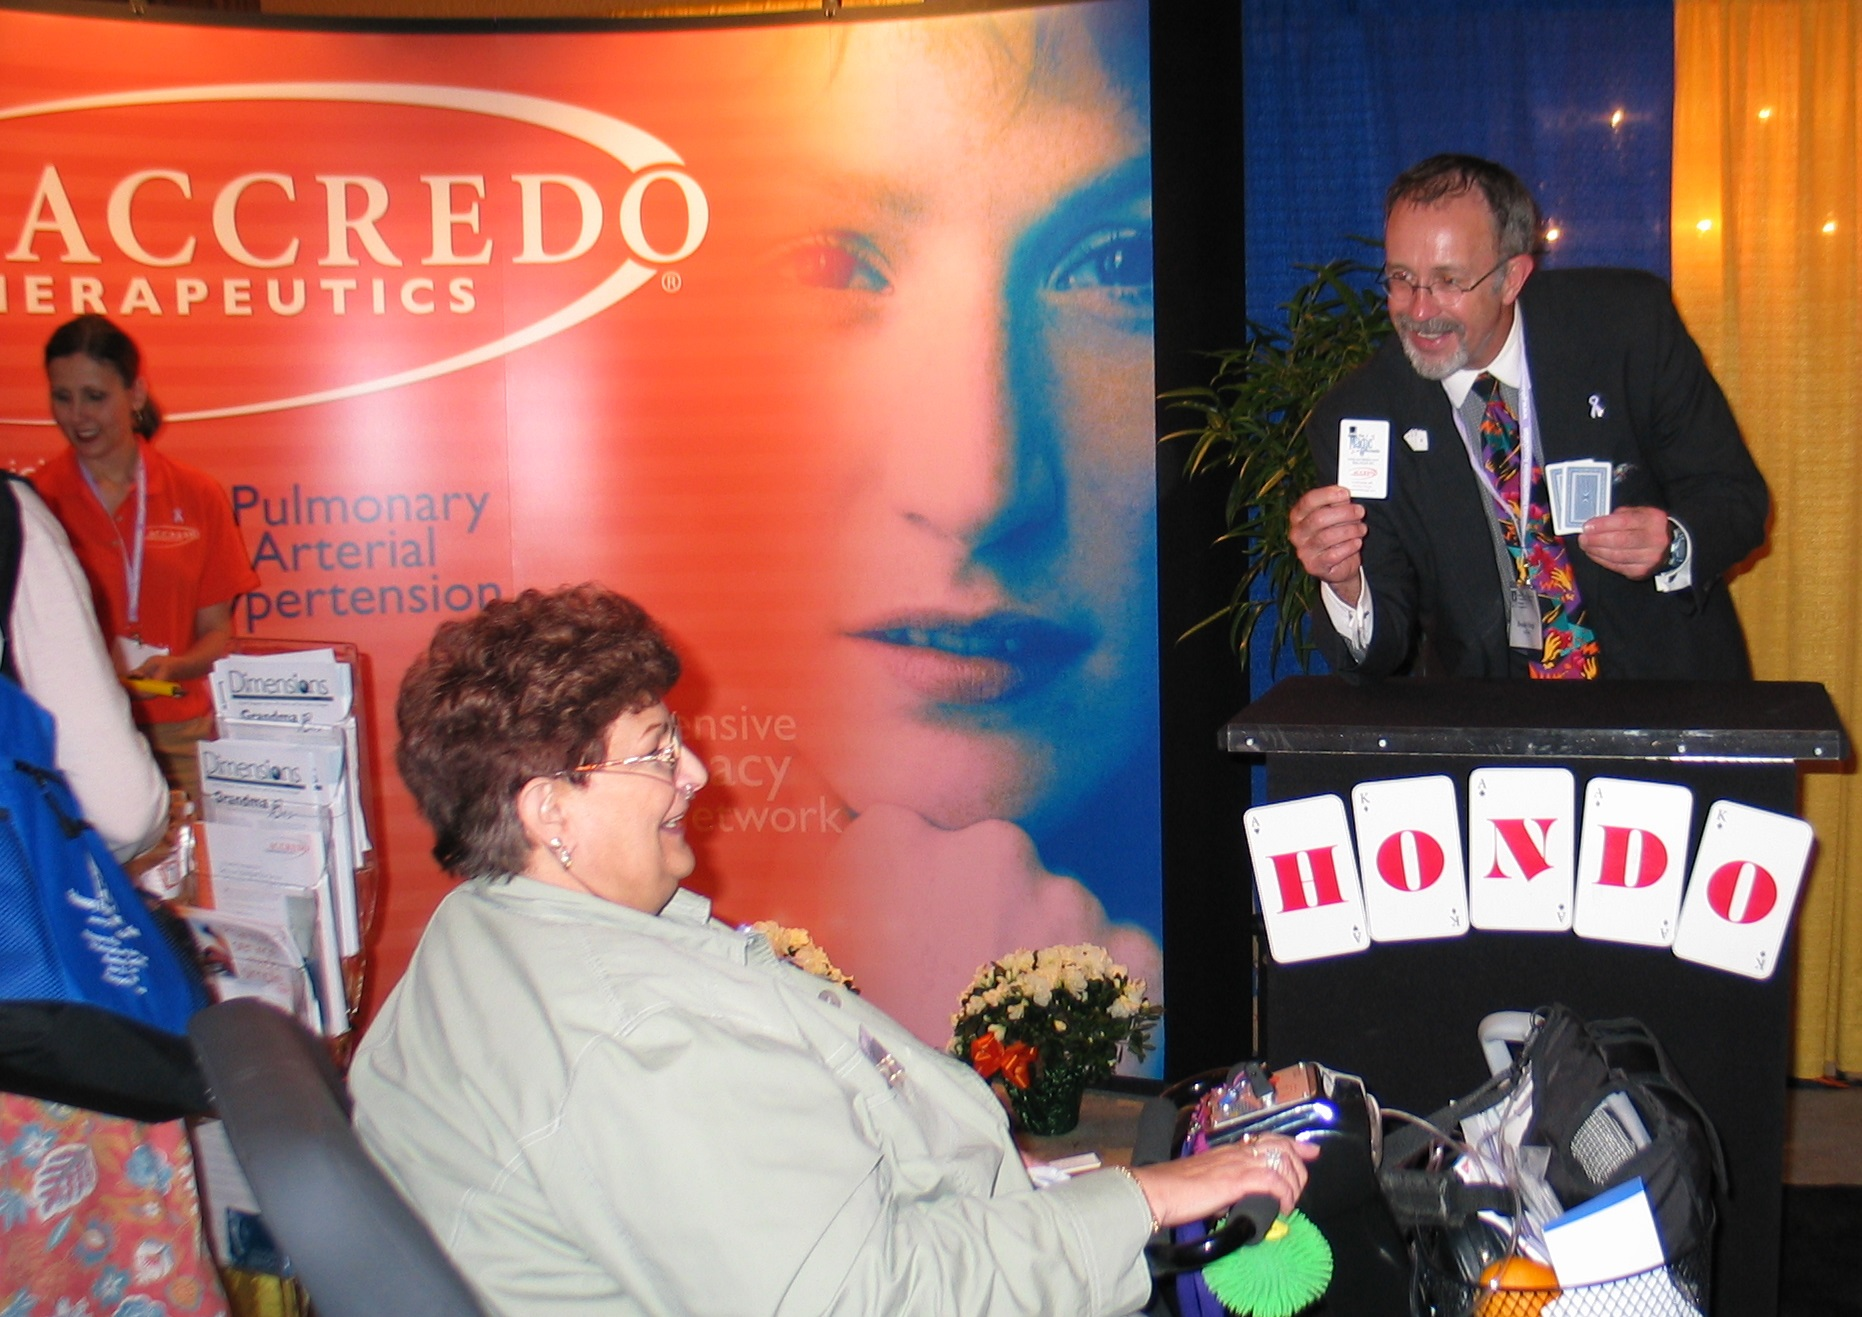 Accredo Therapeutics engages Hondo for numerous Arterial Pulmonary Hypertension shows. Seeing smiles on faces is magical for both Hondo and sponsor.